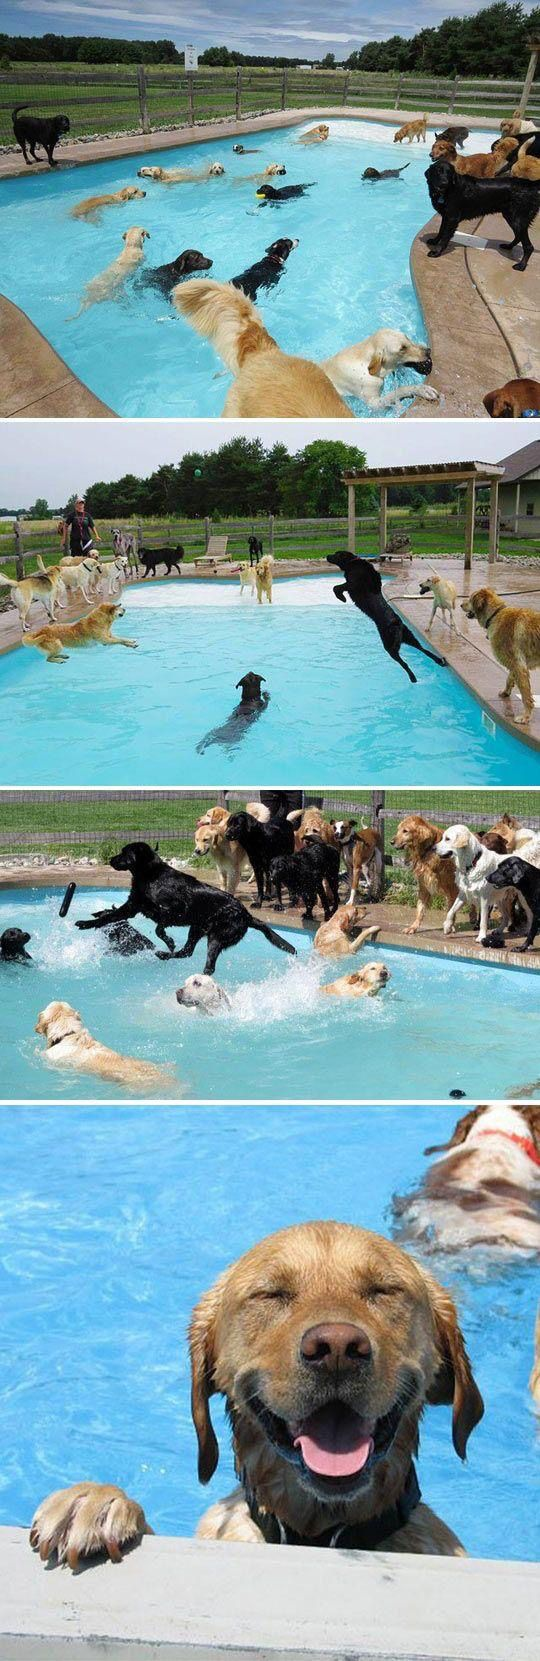 If I was in a pool full of puppies, I'd be smiling too!